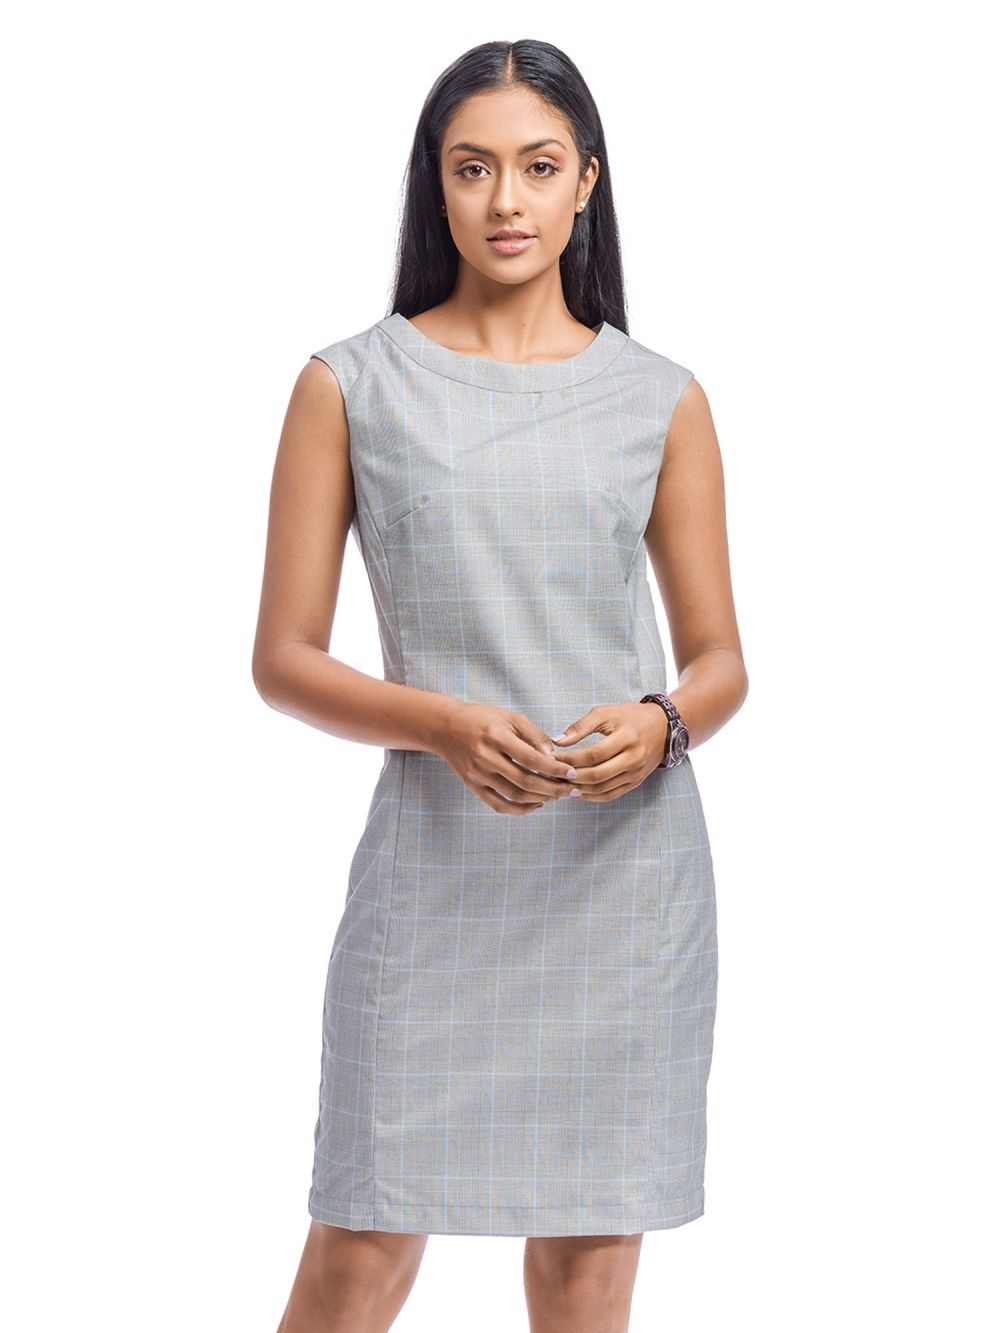 a29aa312 Ombre Lane Dresses : Buy Ombre Lane Women's Grey Checks Sleeveless ...